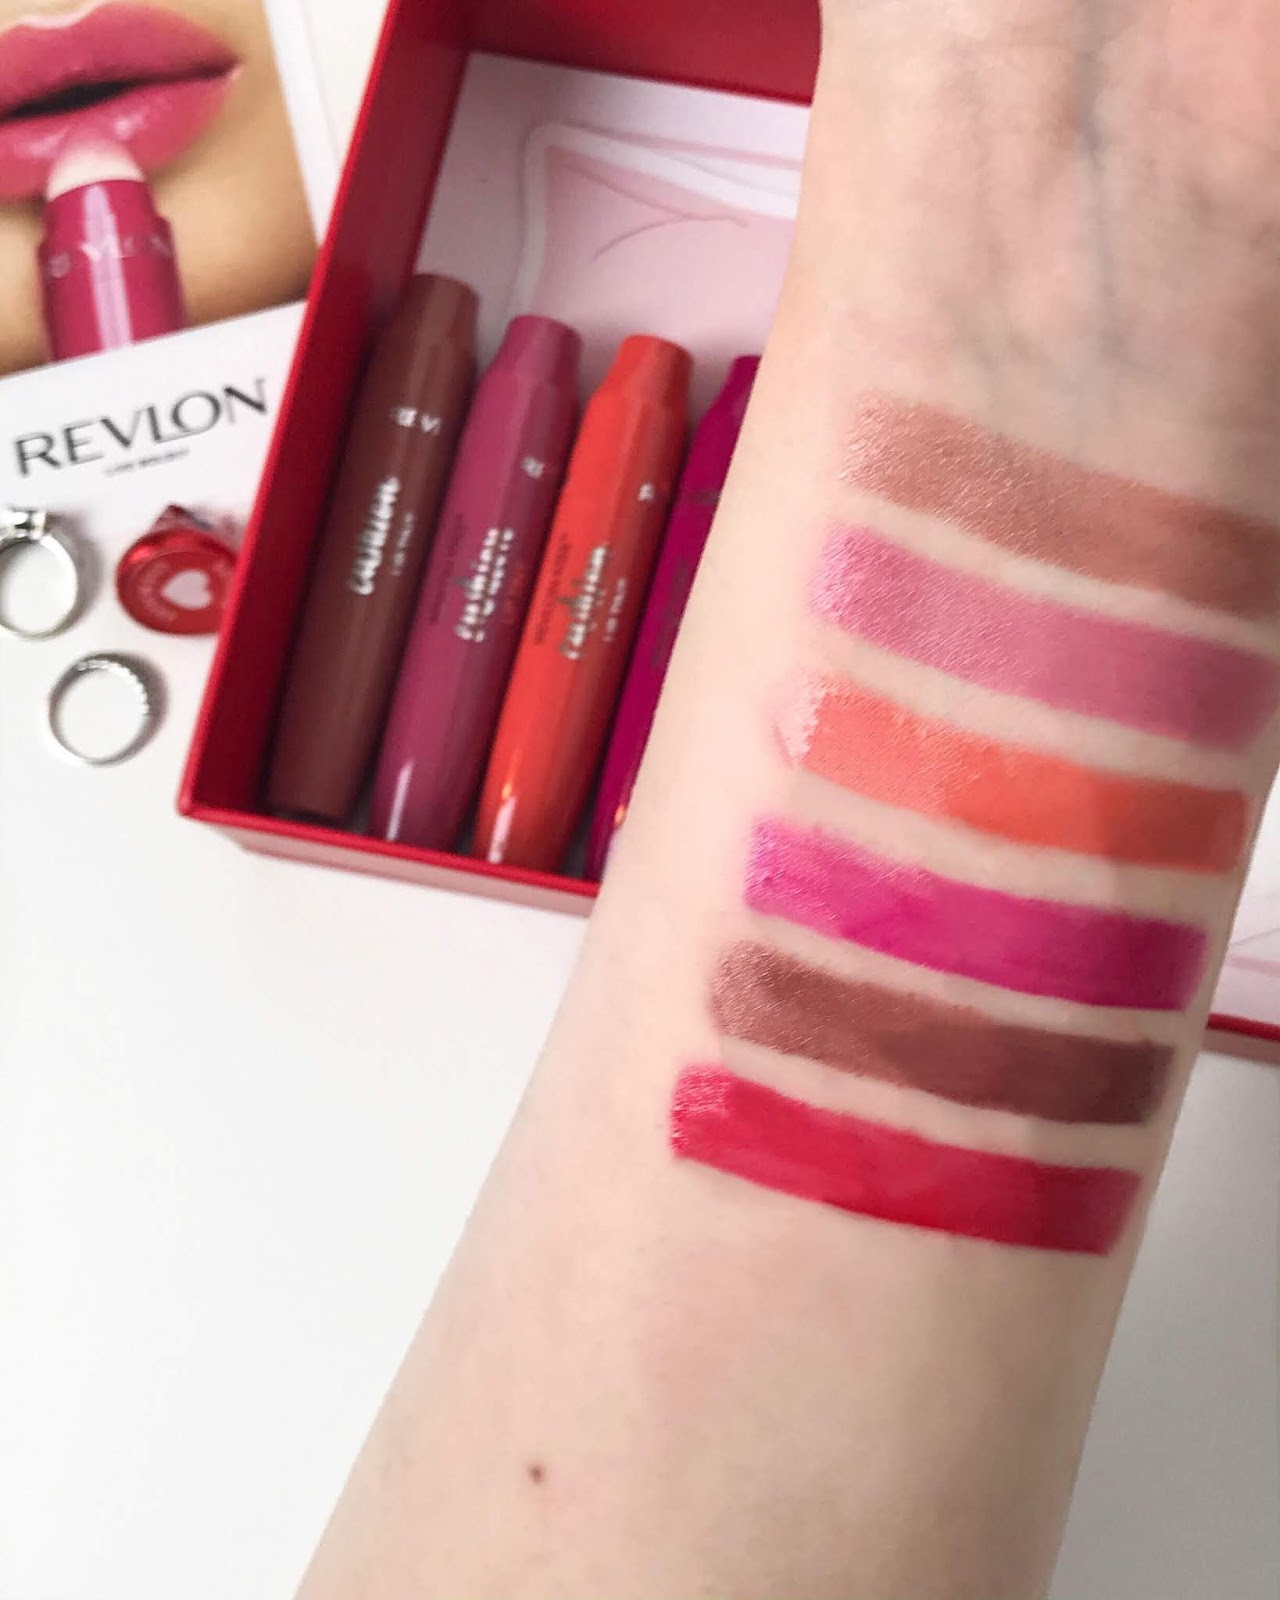 revlon kiss cushion lip tints swatches